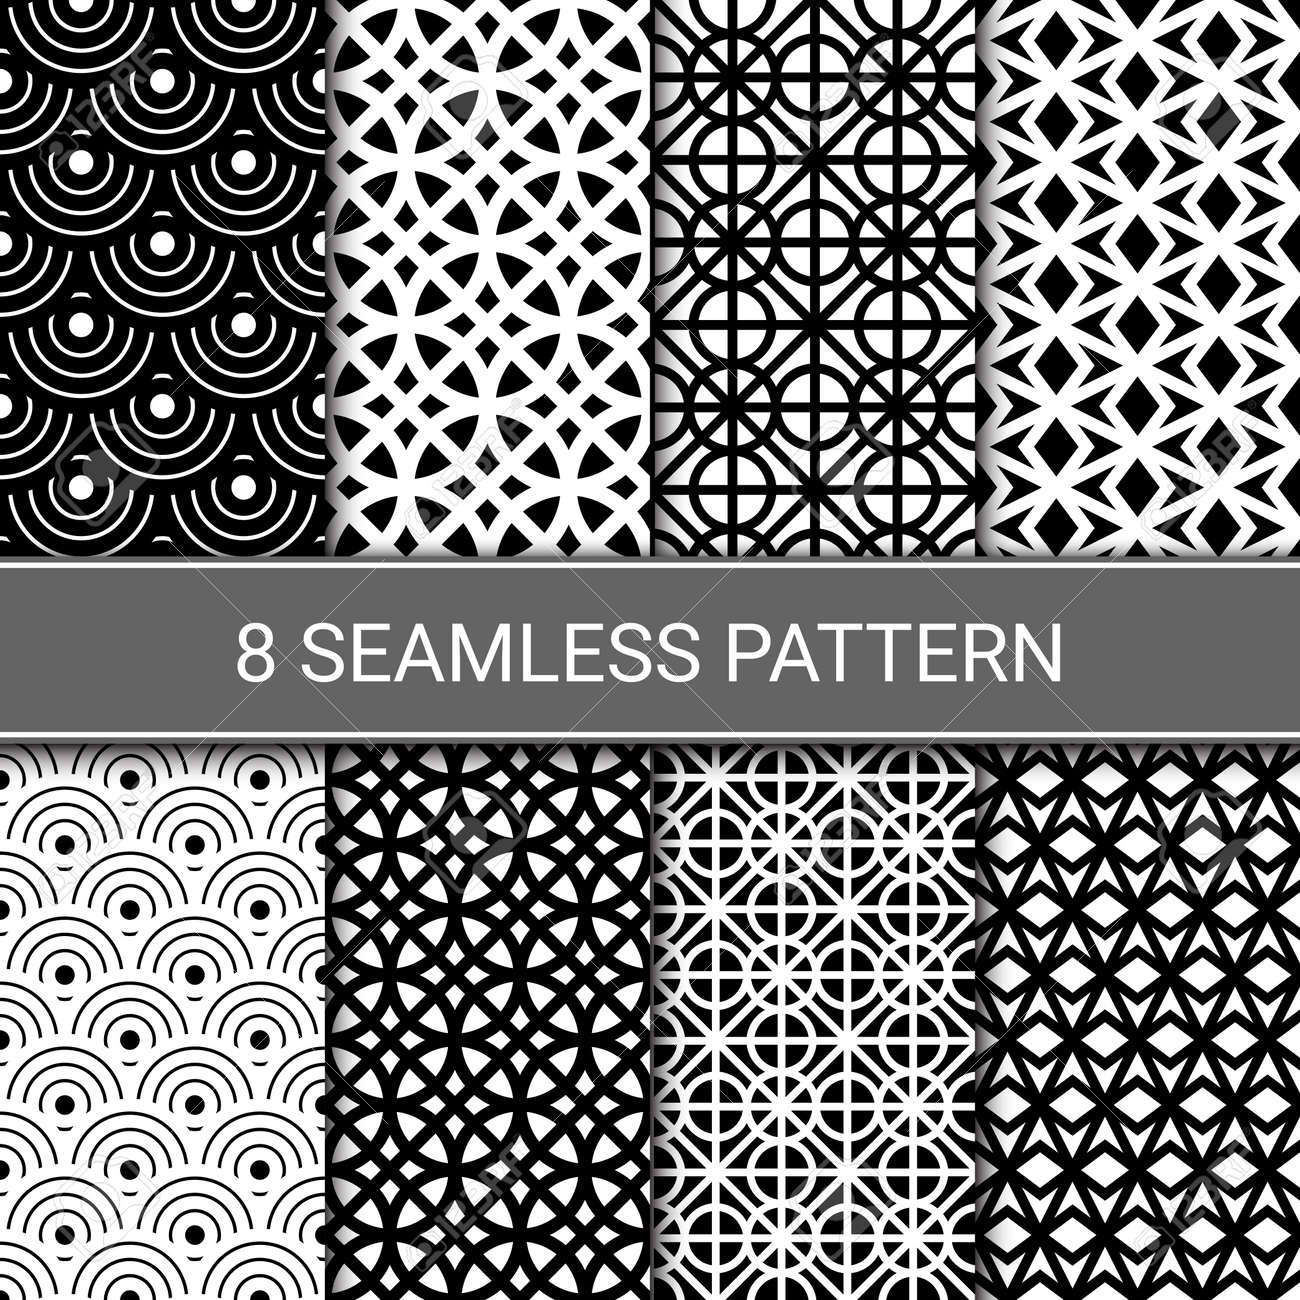 Set of abstract geometric seamless patterns, vector illustration - 145843604